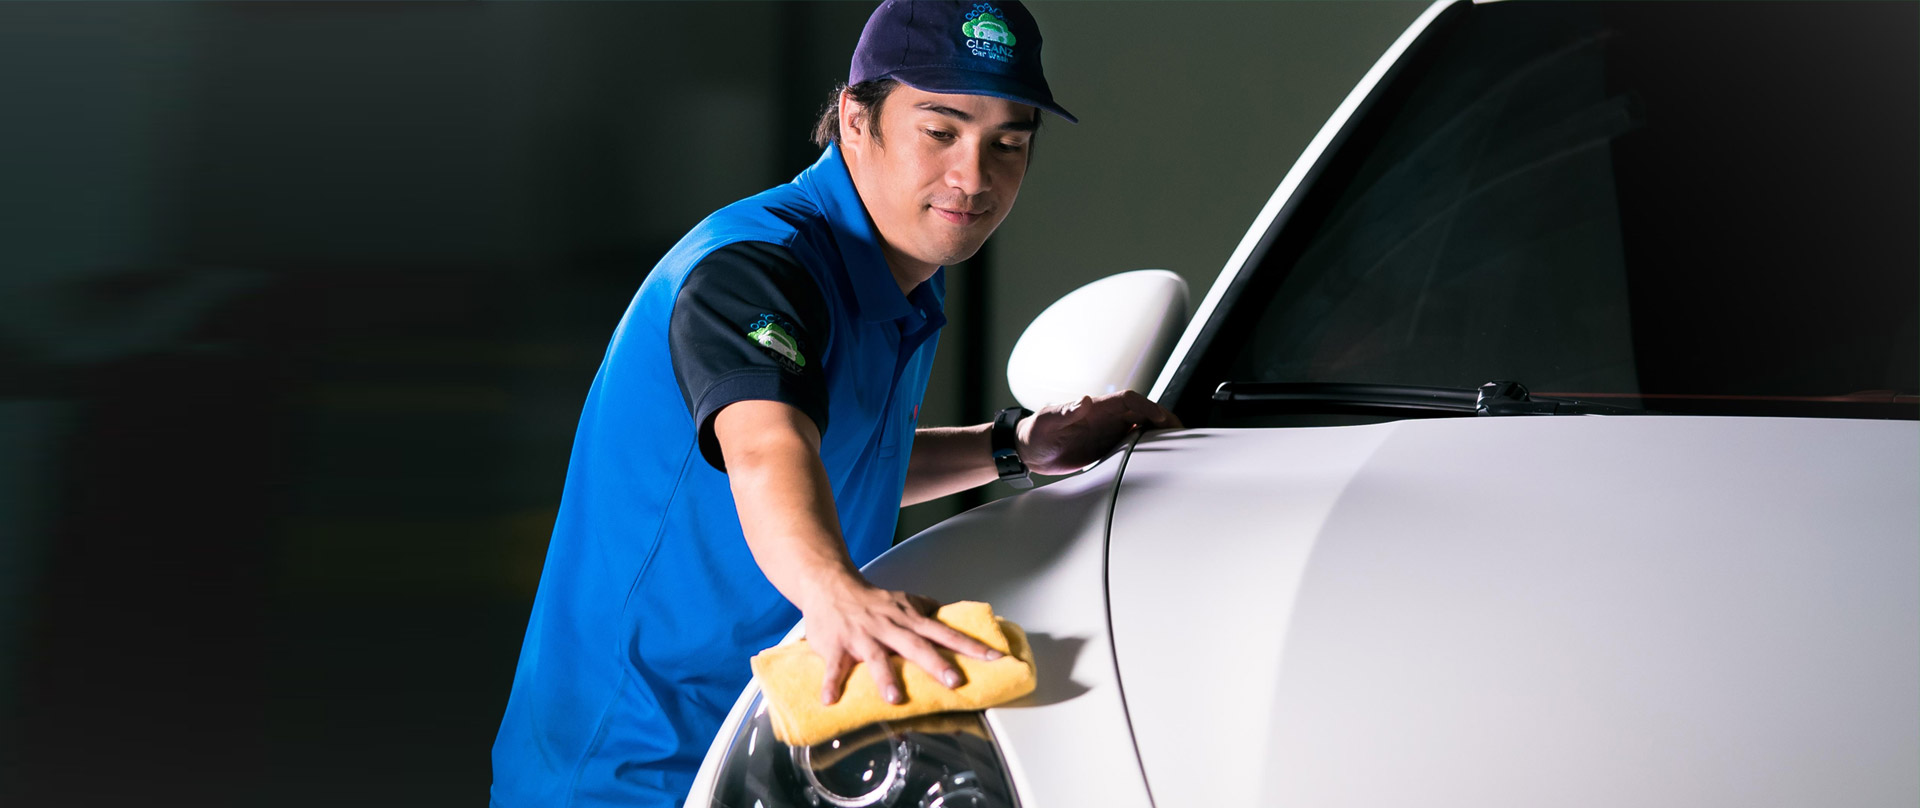 ecofriendly car washing companies in Dubai